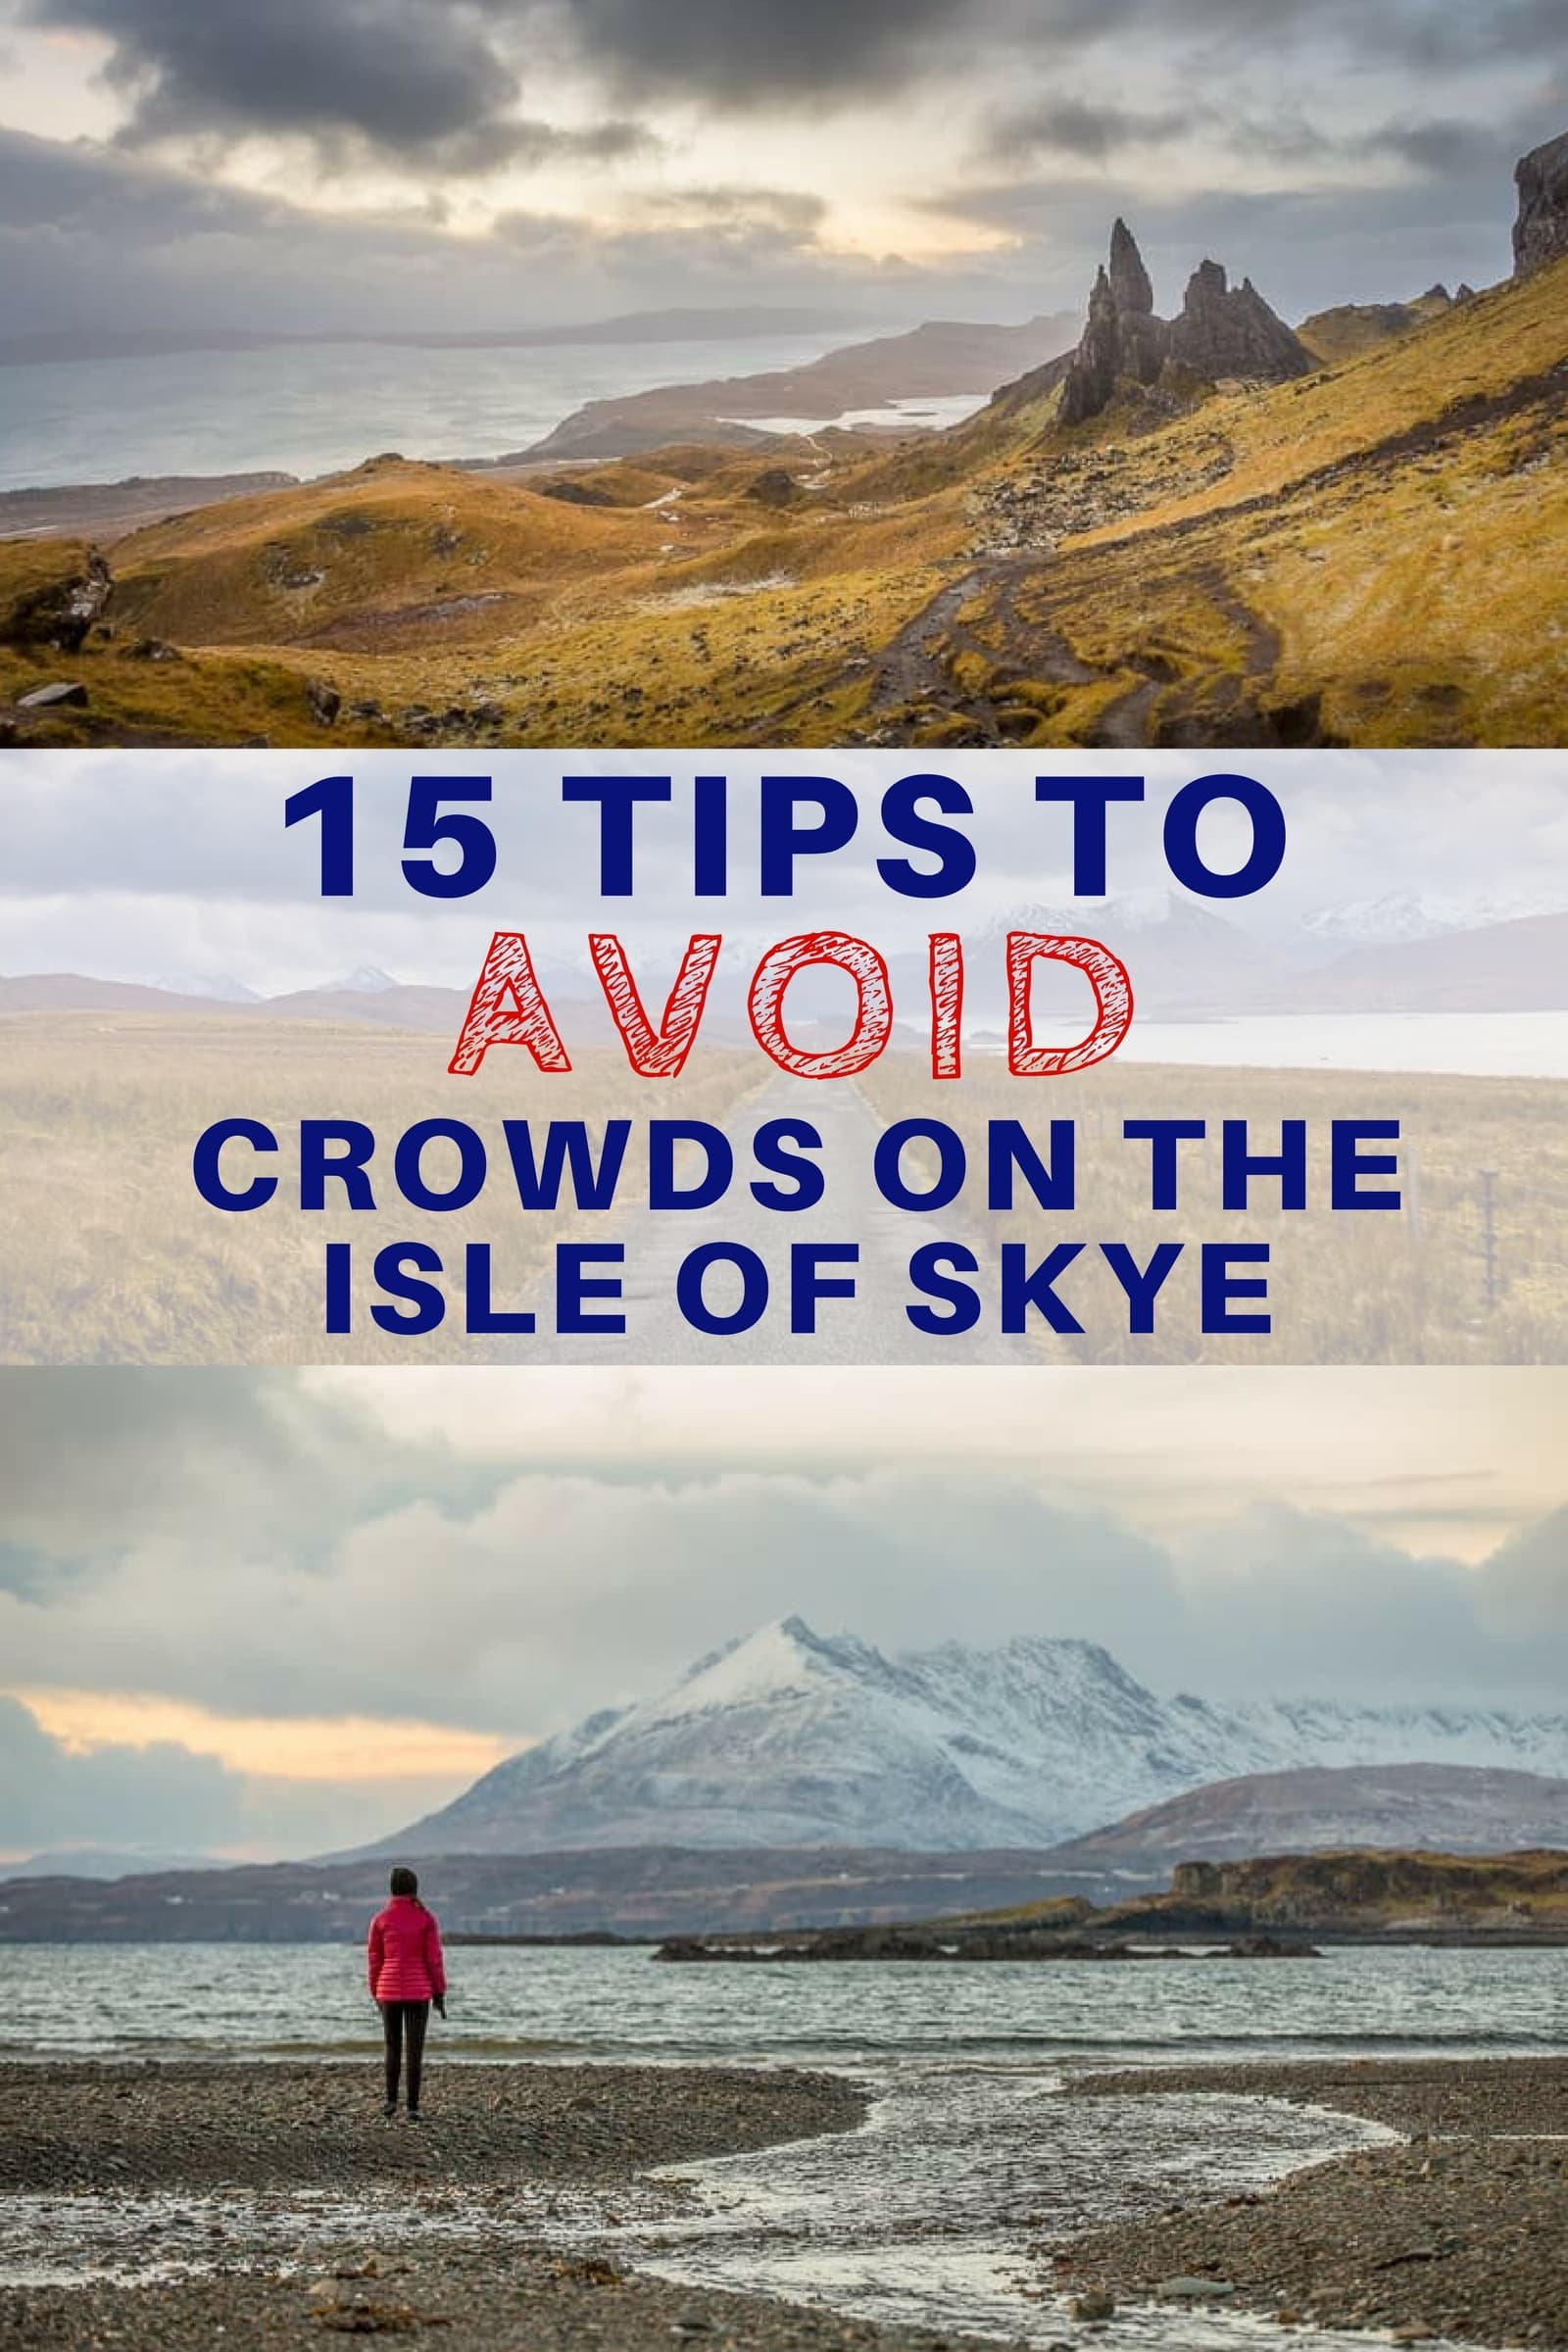 The Isle of Skye in Scotland is amazingly scenic but it can get very crowded, especially in the summer. We share 15 tips to help travelers avoid crowds on the Isle of Skye. Whether you are able to travel off season or need to travel during the busy summer months, our travel guide provides advice to help you avoid the crowds, get off the beaten path, and enjoy some peaceful moments on this beautiful island. #IsleofSkye #Scotland #travel #Scotlandtravel #Skye #ScottishIslands #ScottishHighlands